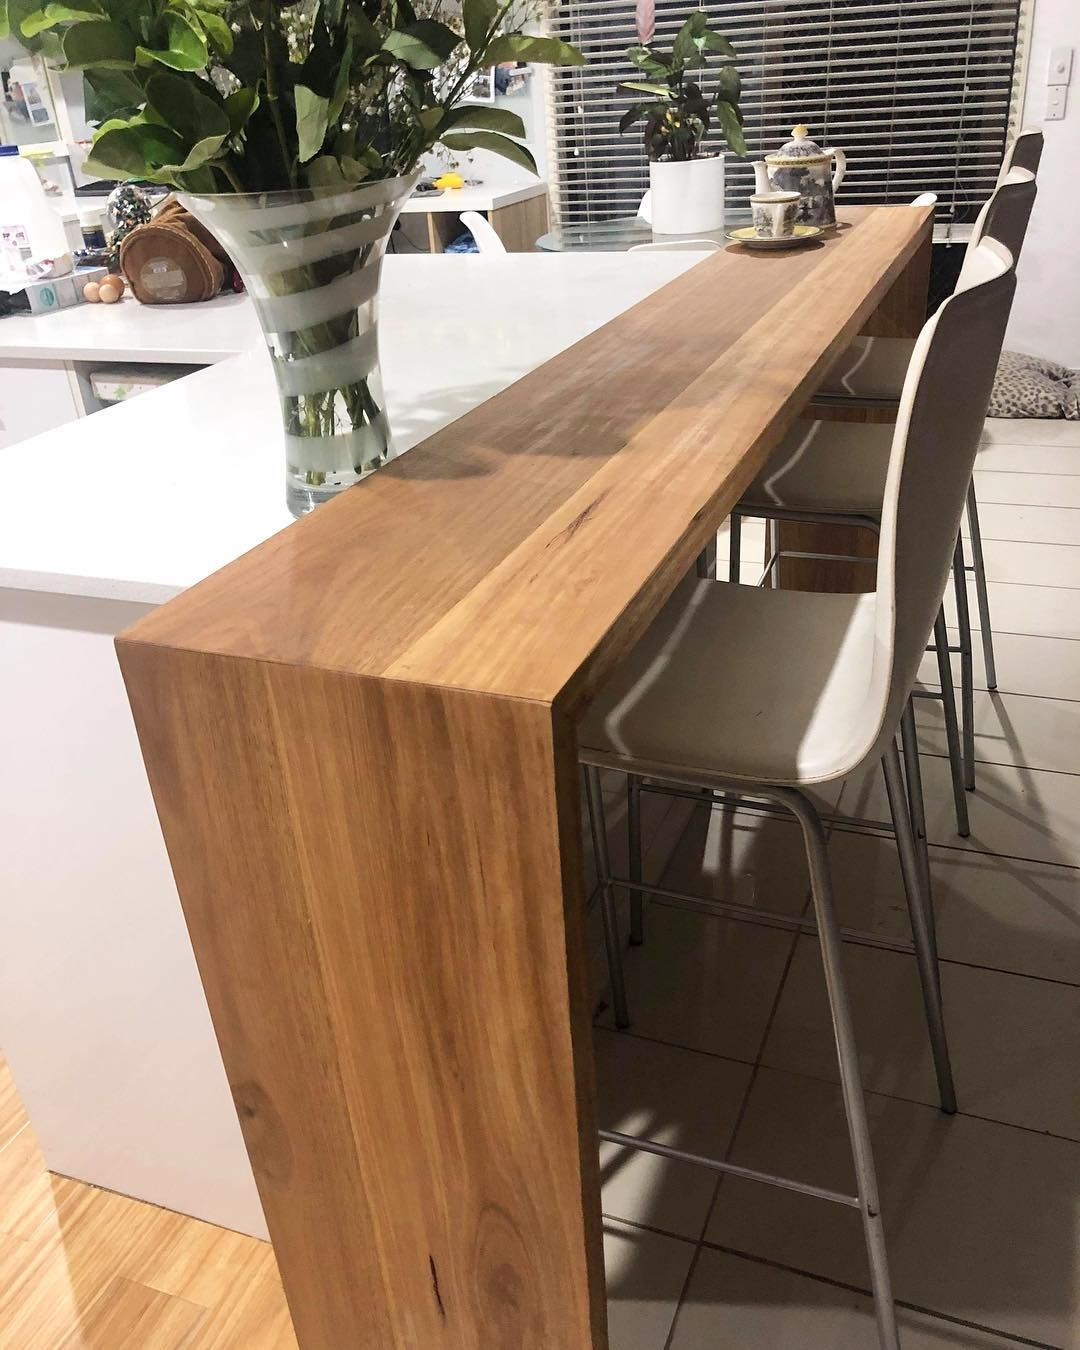 We created this Blackbutt kitchen island to extend an existing ...